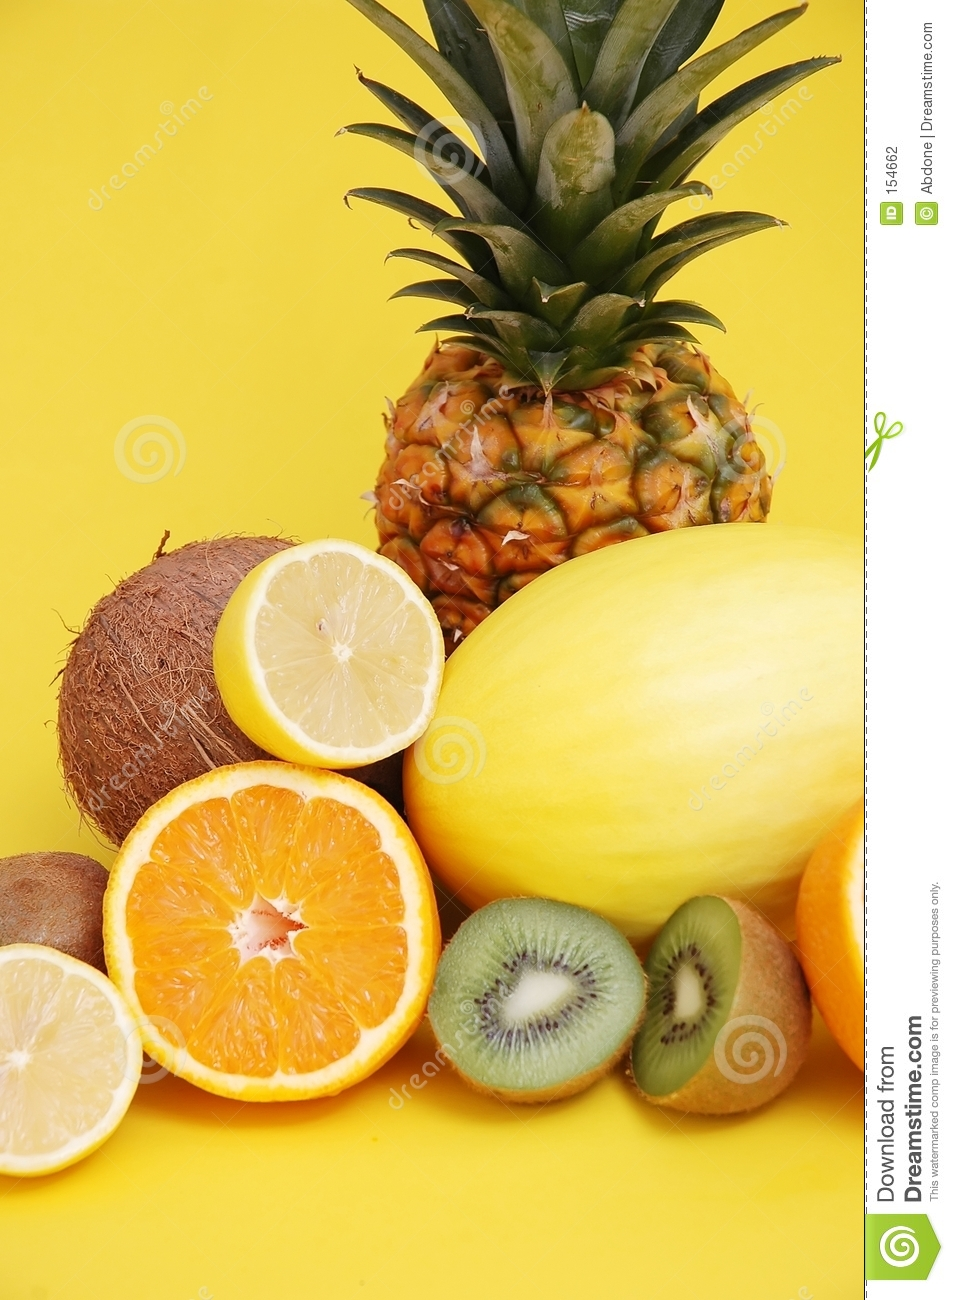 Pineapple and melon and citrus